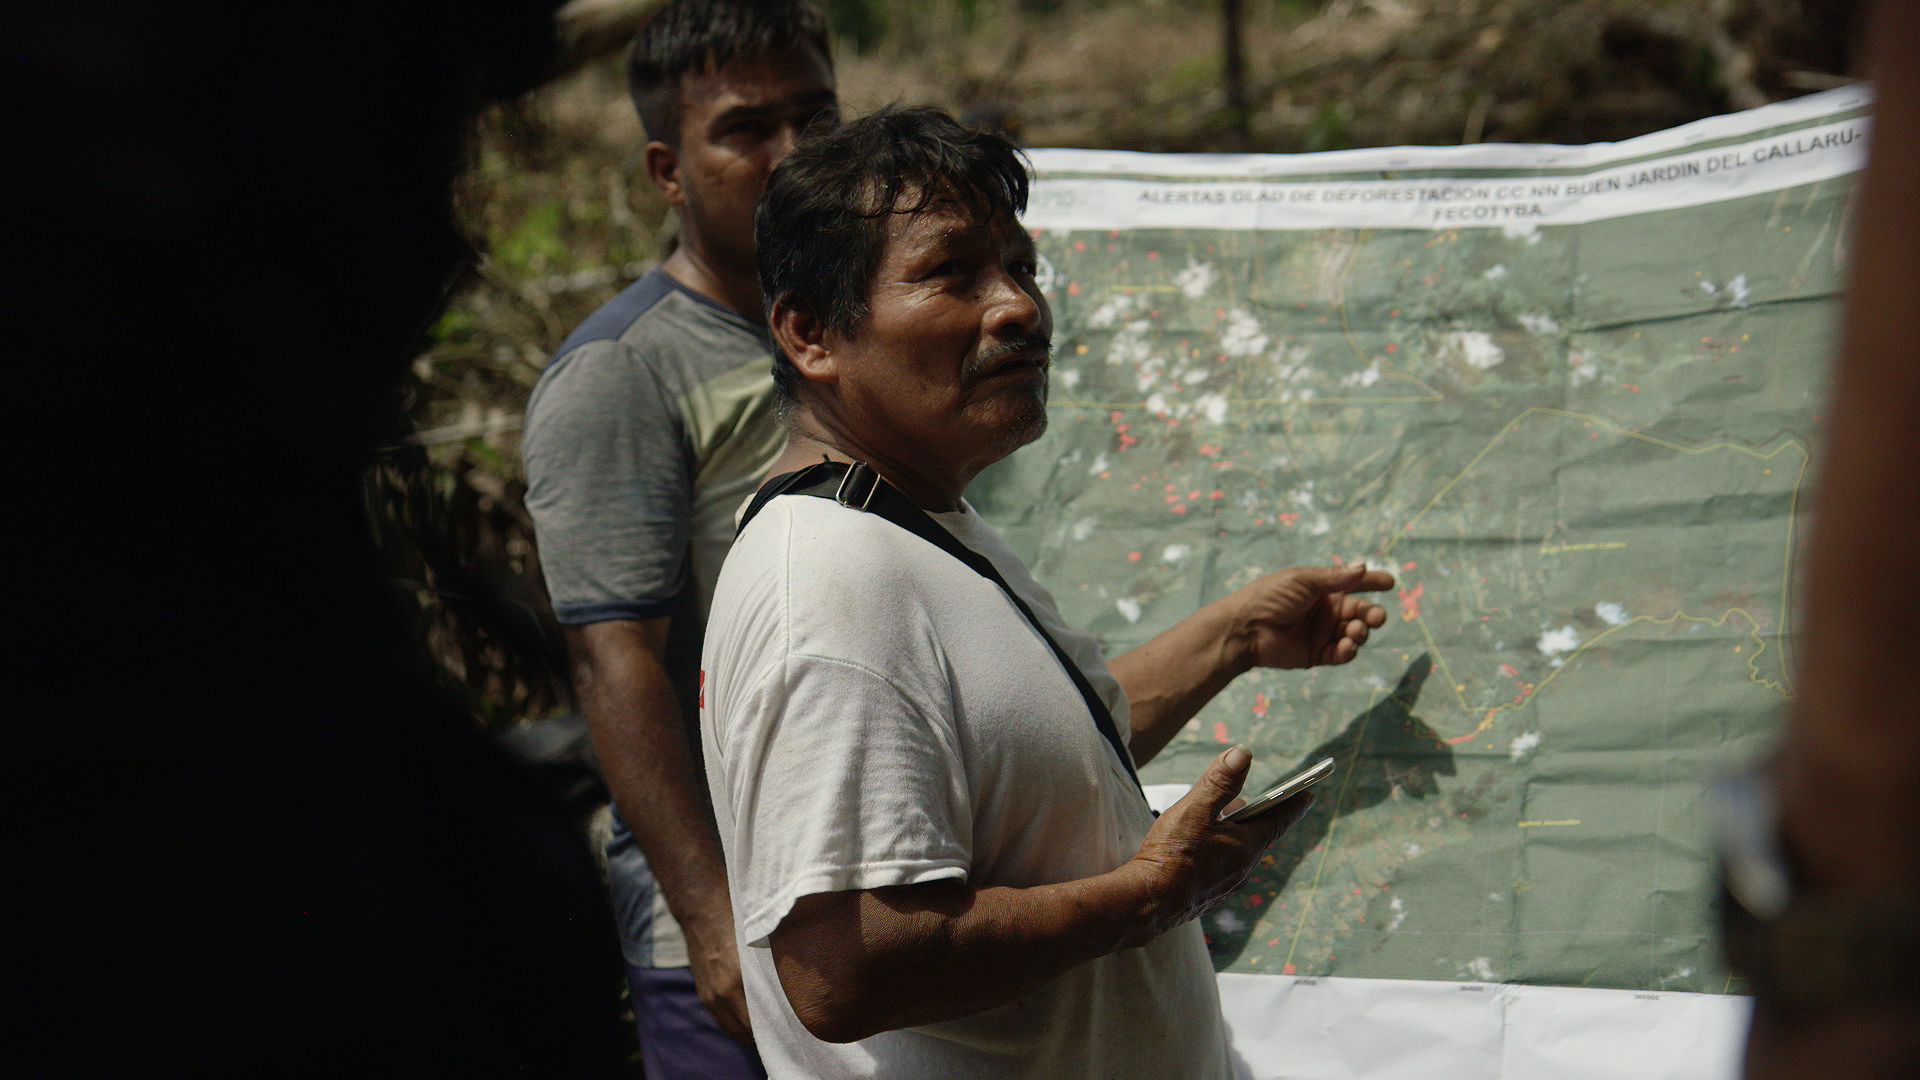 These indigenous Peruvians are fighting deforestation with drones and satellites